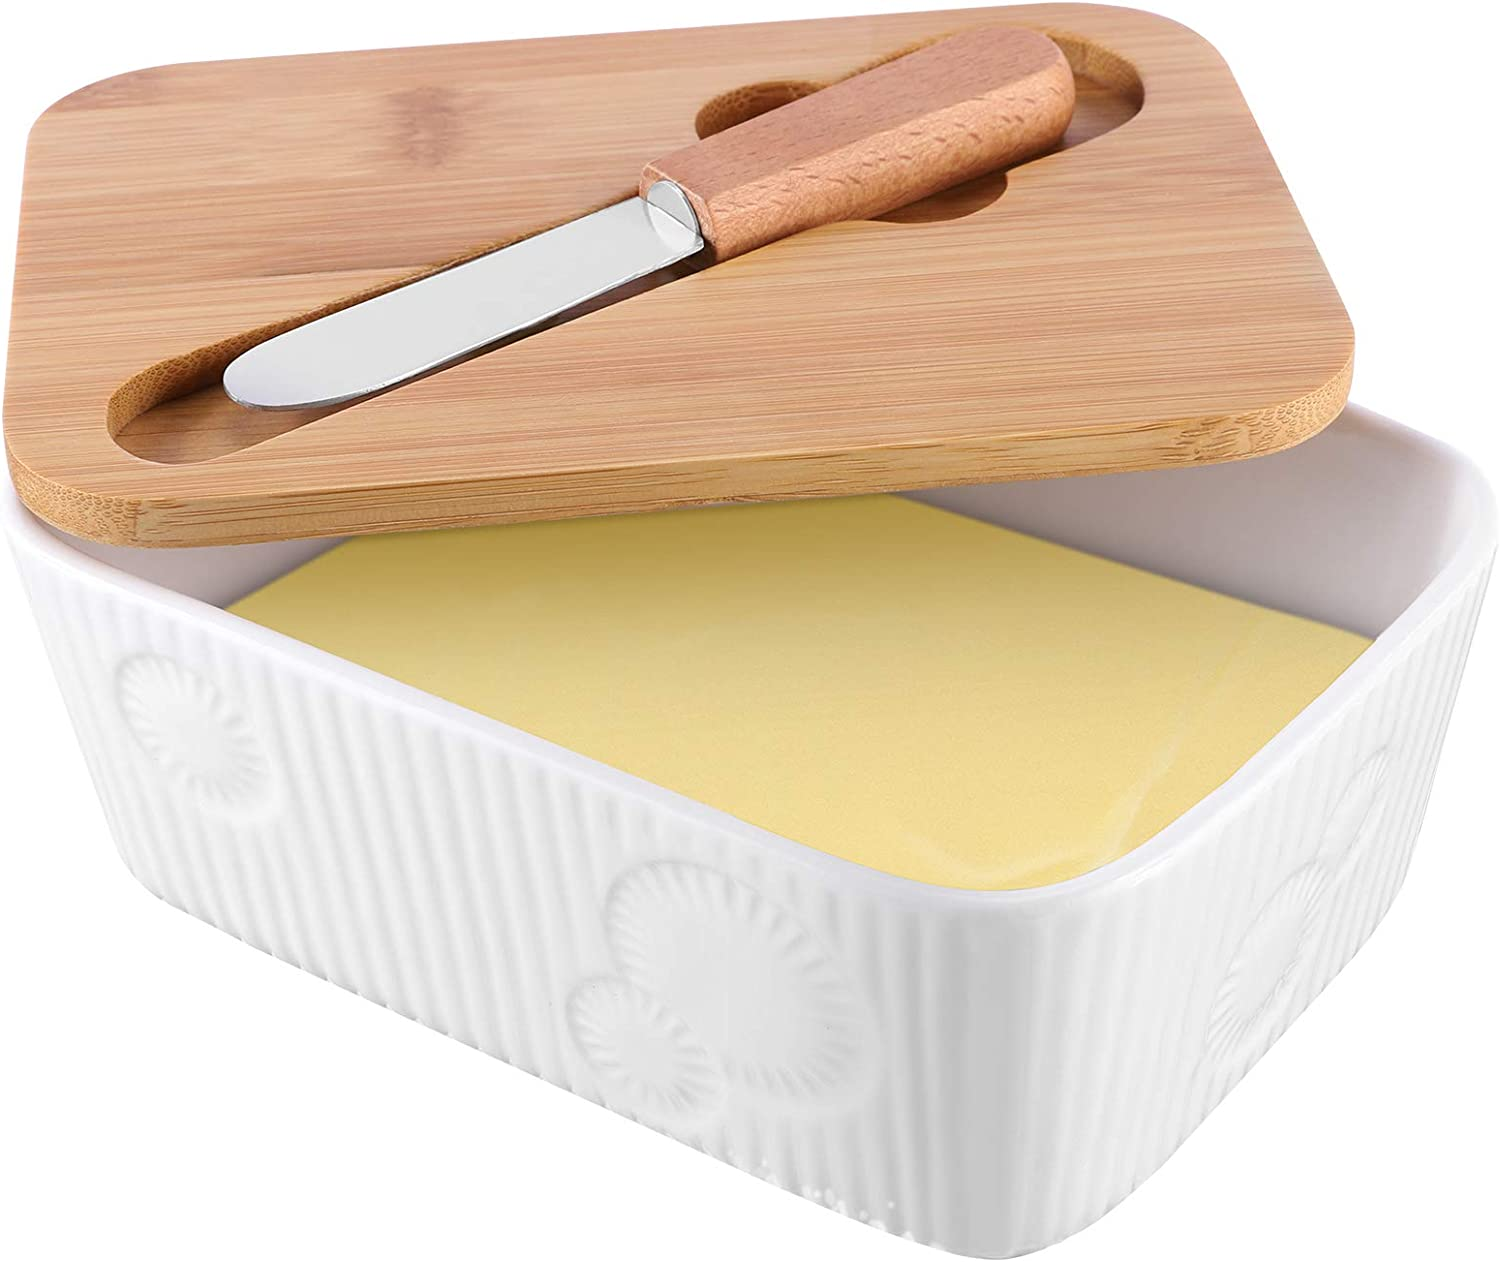 Butter Dish with Covers, Butter Container with Knife, Porcelain Butter Keeper, Airtight Butter Container with Lid & Steel Knife, Butter Holder to Keep Your Butter Fresh, Holds 2 Butter Sticks (White)